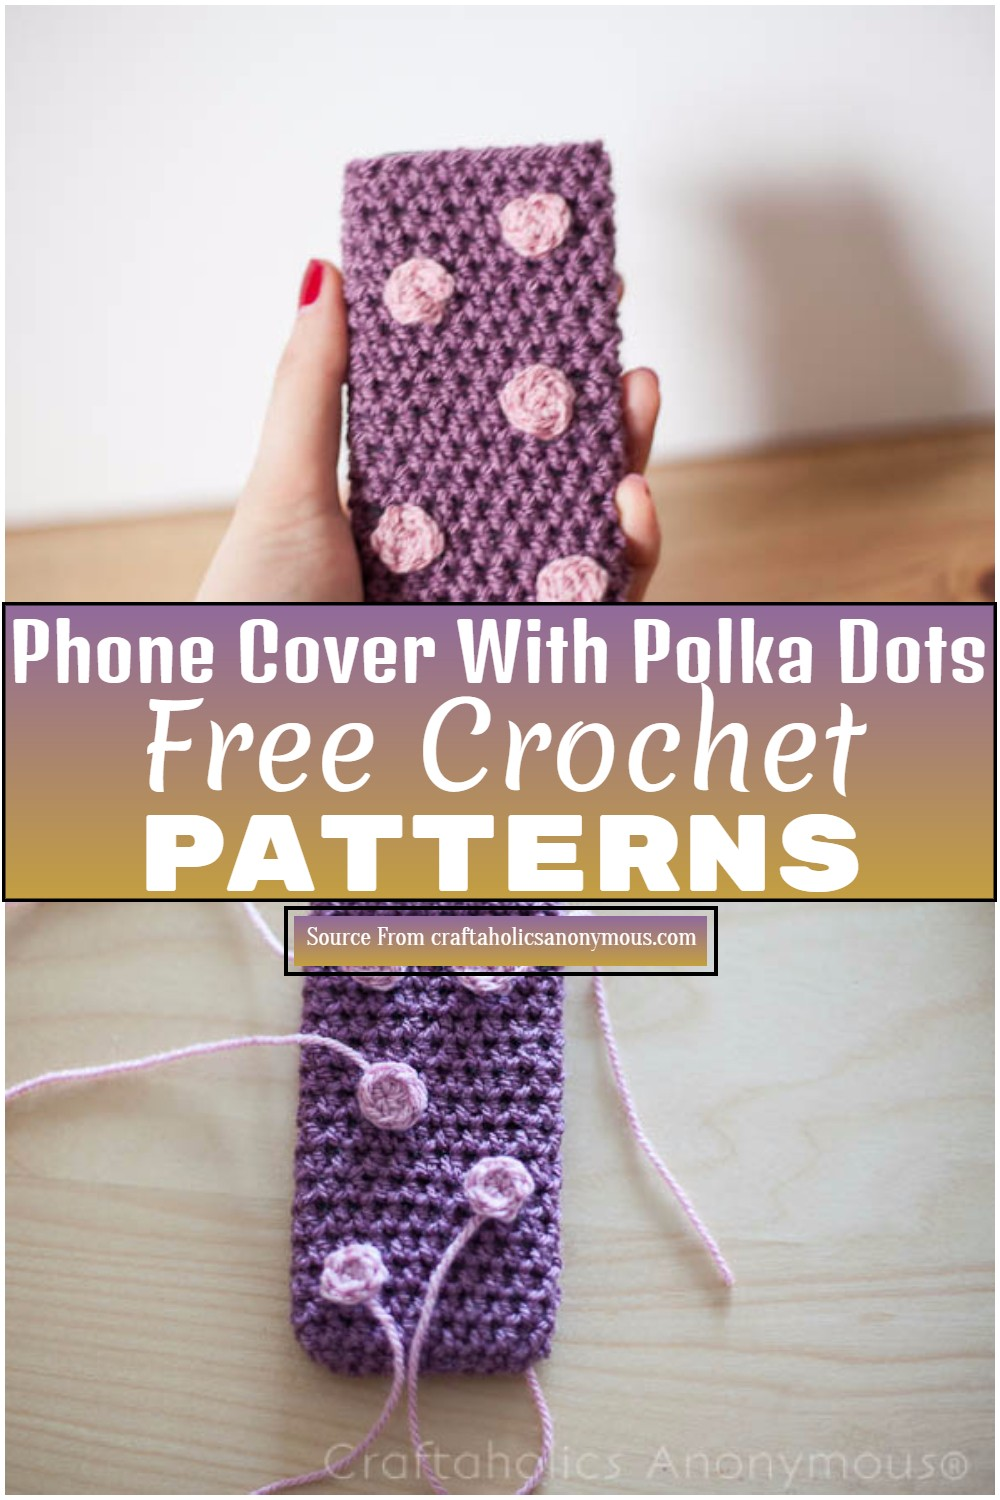 Free Crochet Phone Cover With Polka Dots 1